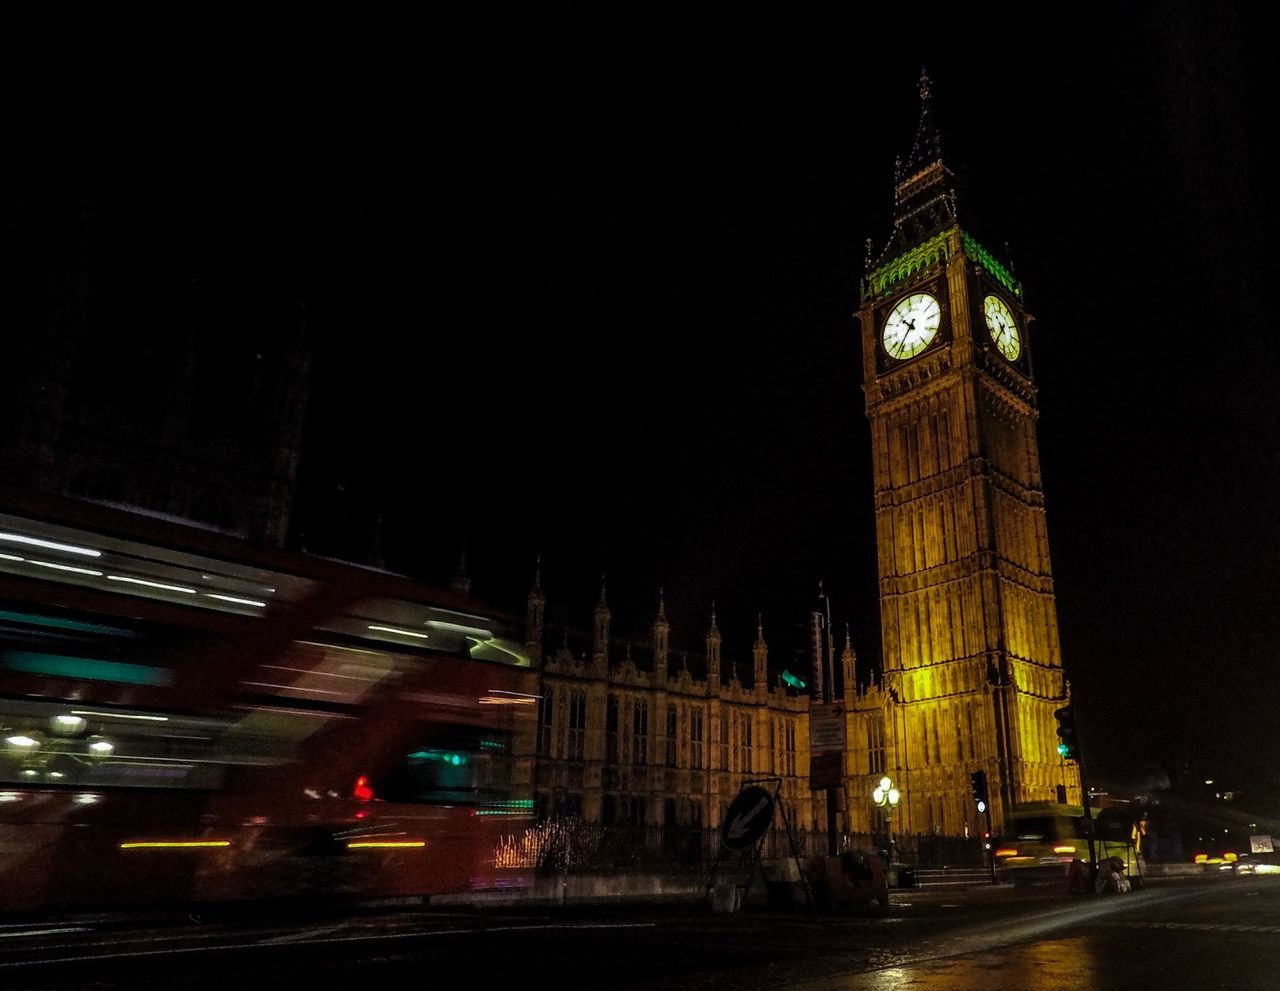 Big Ben Night Clock Tower Architecture Transportation Tower Illuminated Built Structure Travel Destinations Clock London Tourism Photooftheday GoPrography Sky No People